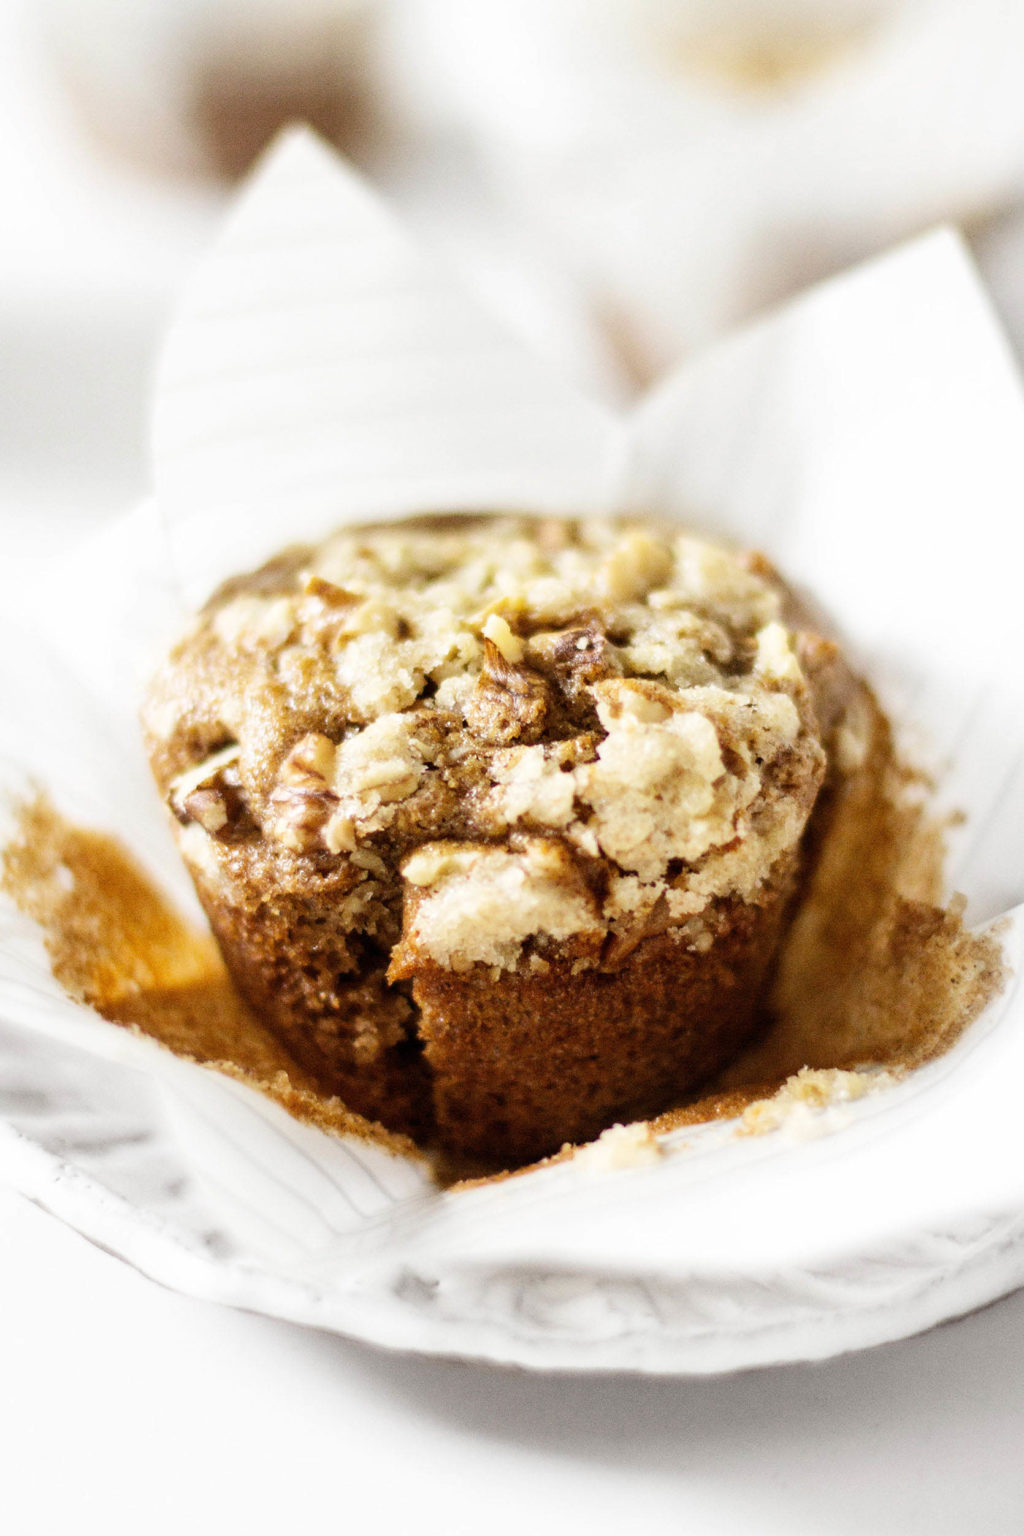 A vegan muffin is being held in a white paper liner. It rests on a white dessert plate.